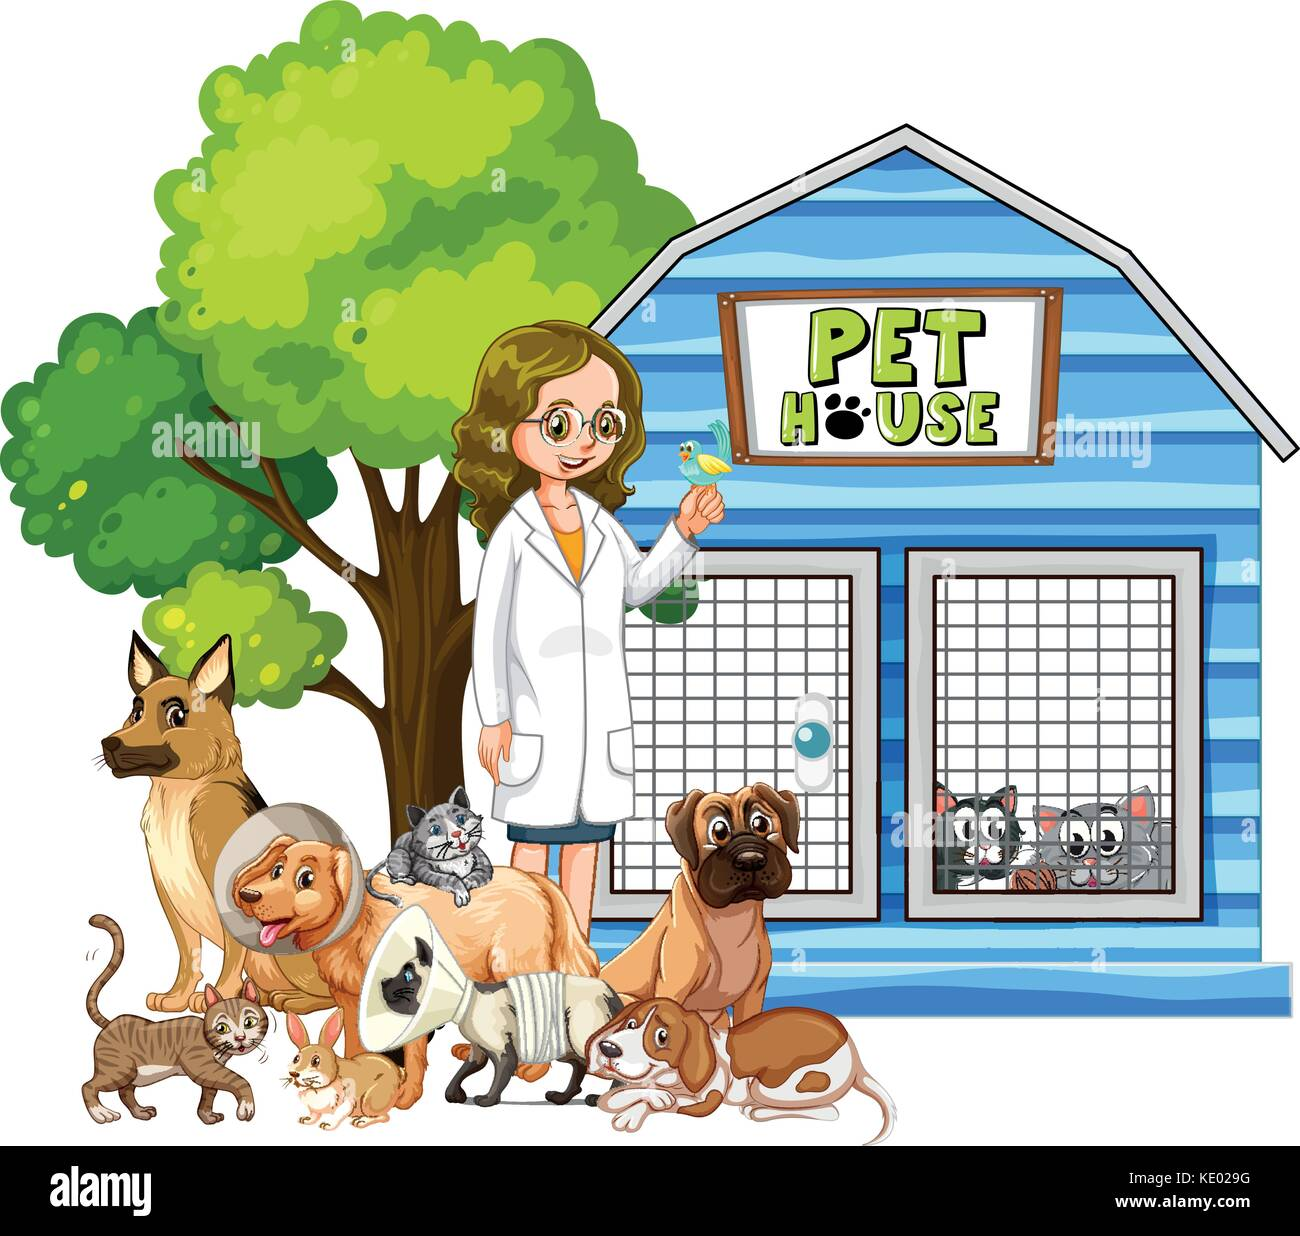 Vet and sick animals at pet house illustration - Stock Image